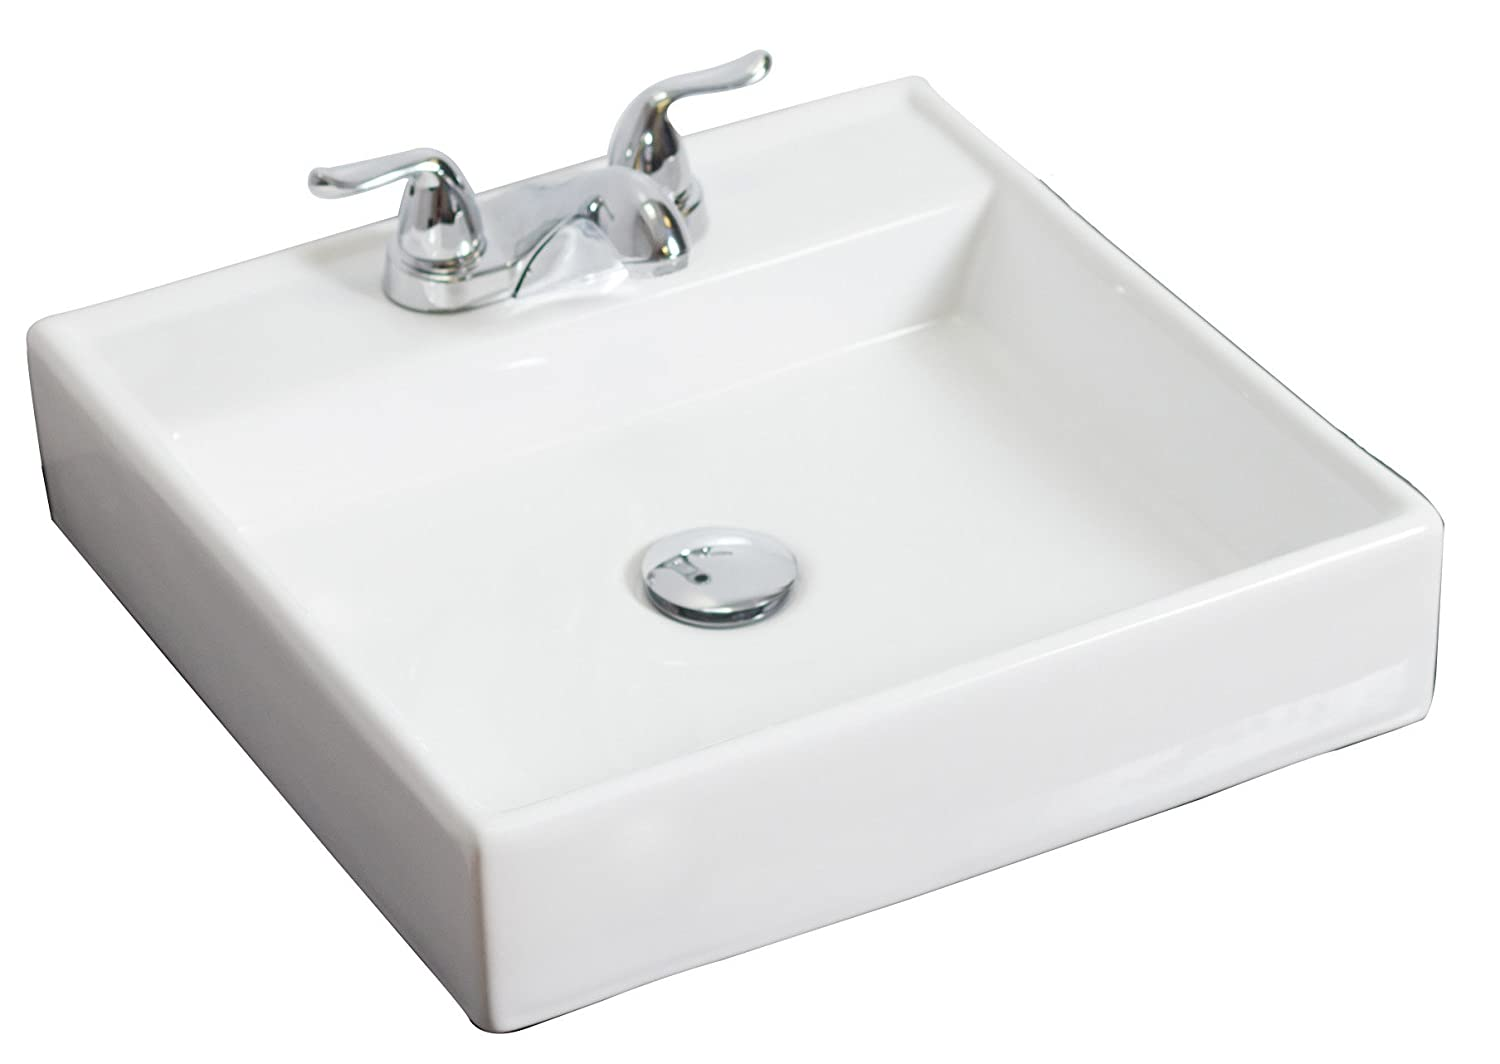 American Imaginations AI-12-596 Above Counter Square Vessel for 4-Inch OC Faucet White IMG Imports Inc. 17.5-Inch x 17.5-Inch